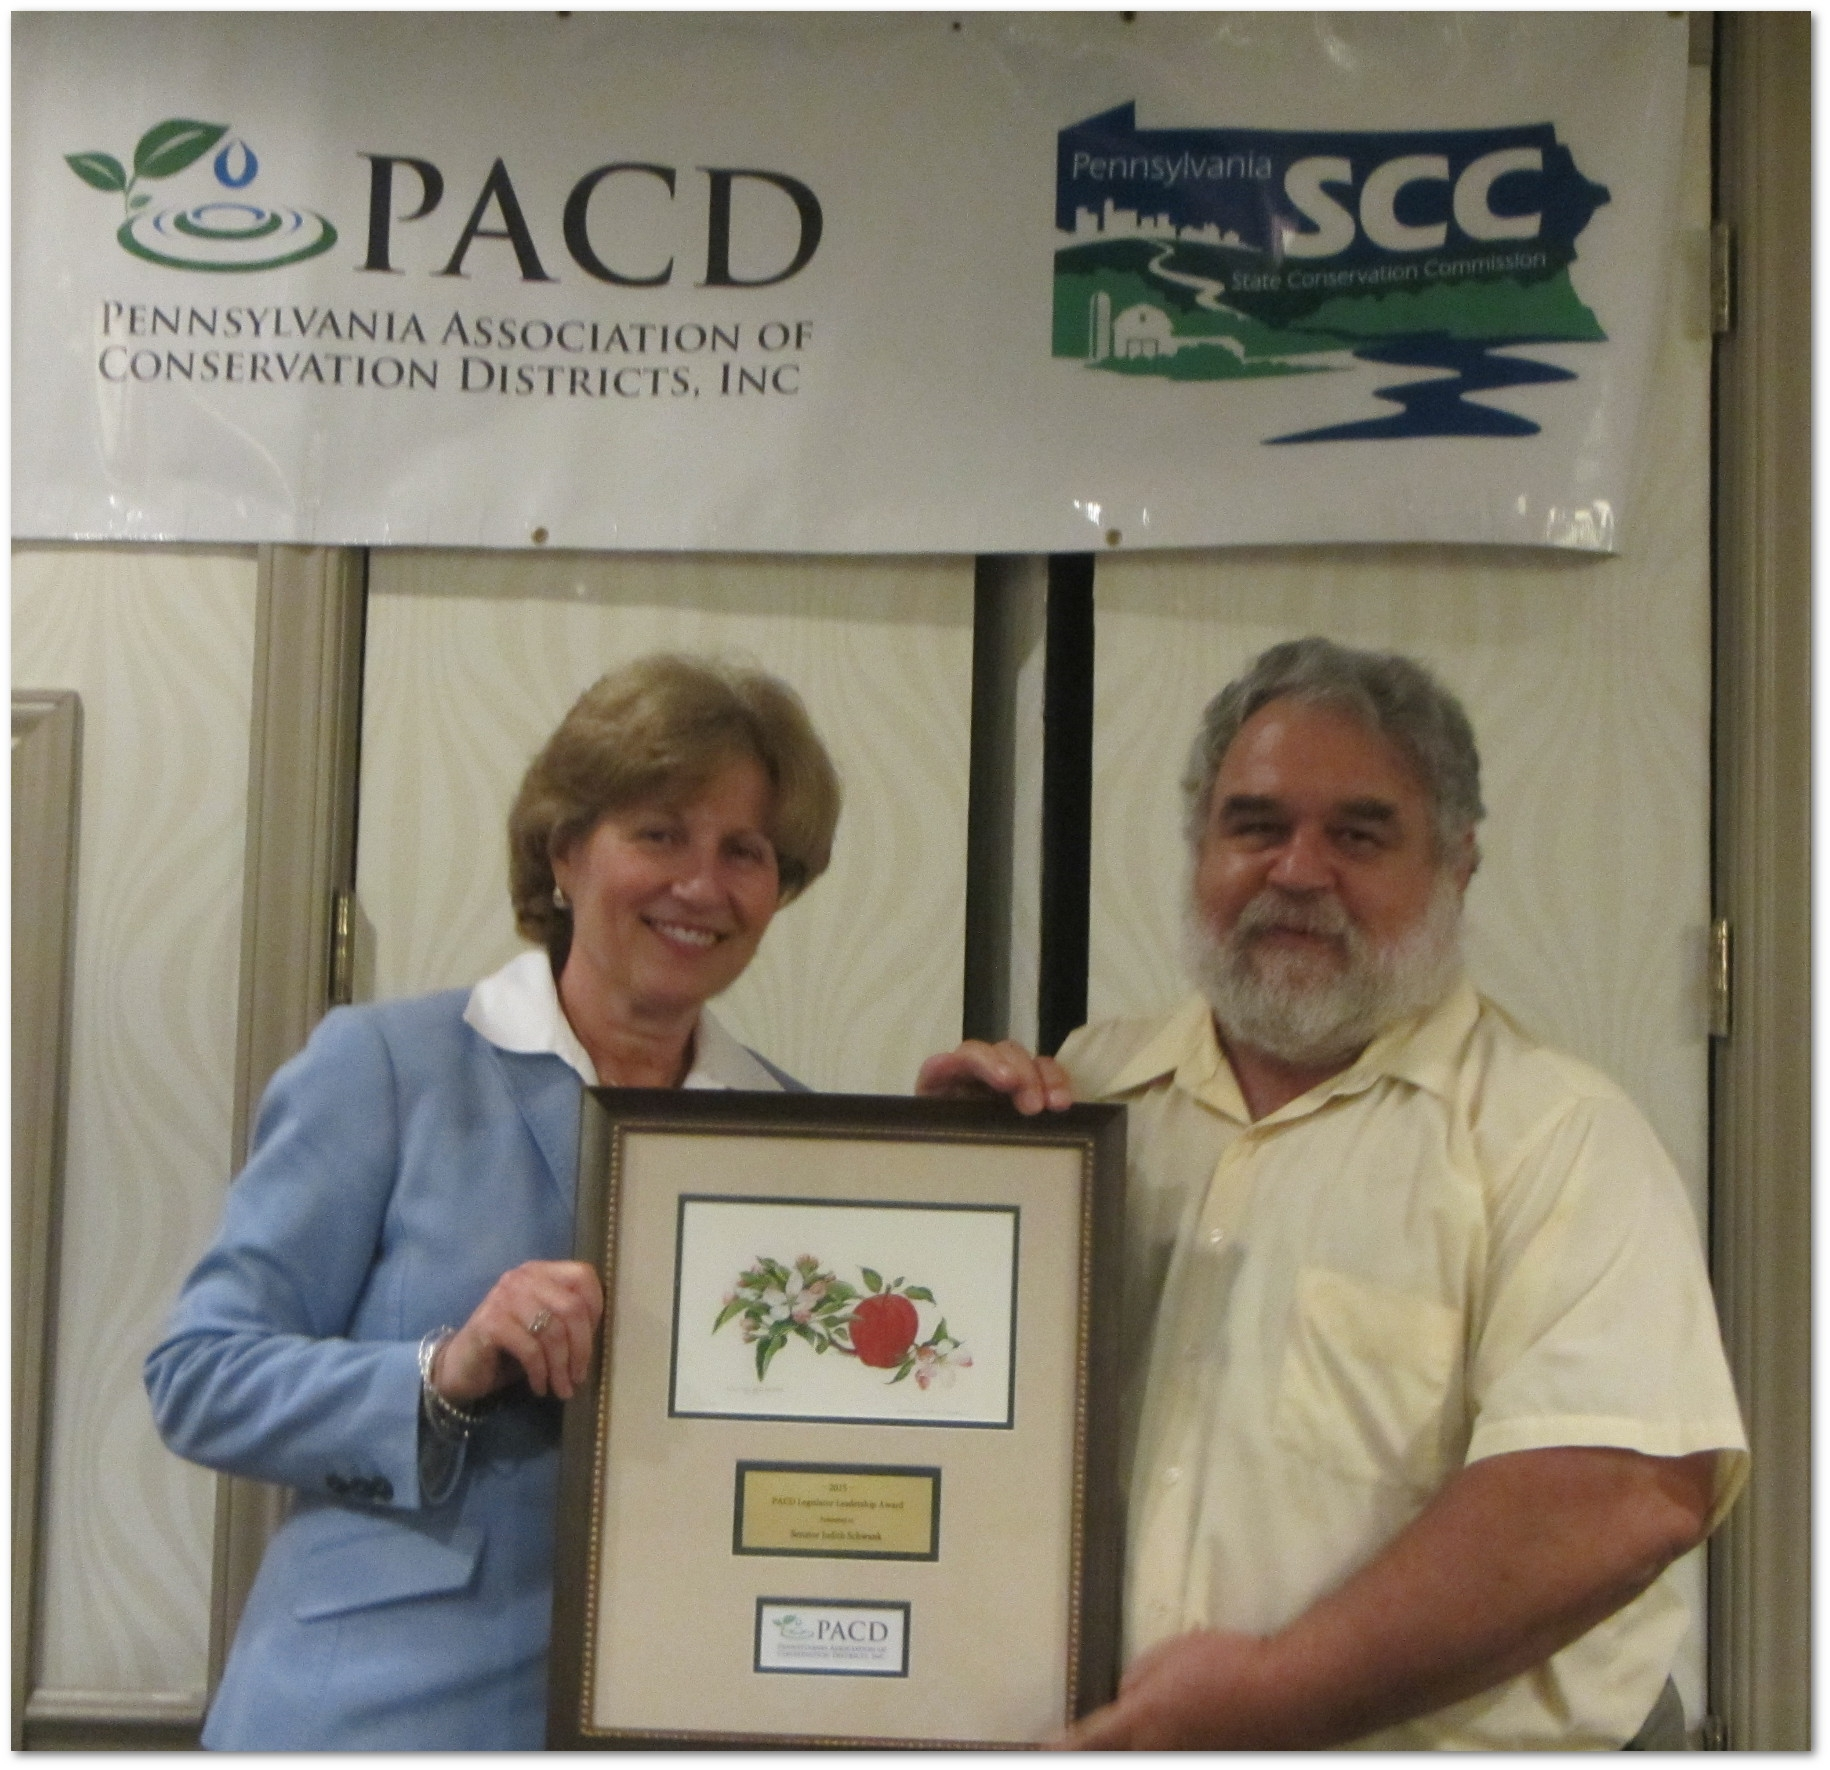 July 8, 2015: Senator Schwank was selected as one of  PA Association of Conservation Districts's (PACD) 2015 Legislator Leadership Award recipient. PACD awards this honor annually to a legislator whose outstanding efforts have helped further the activities and accomplishments of PACD and Pennsylvania's 66 conservation districts.